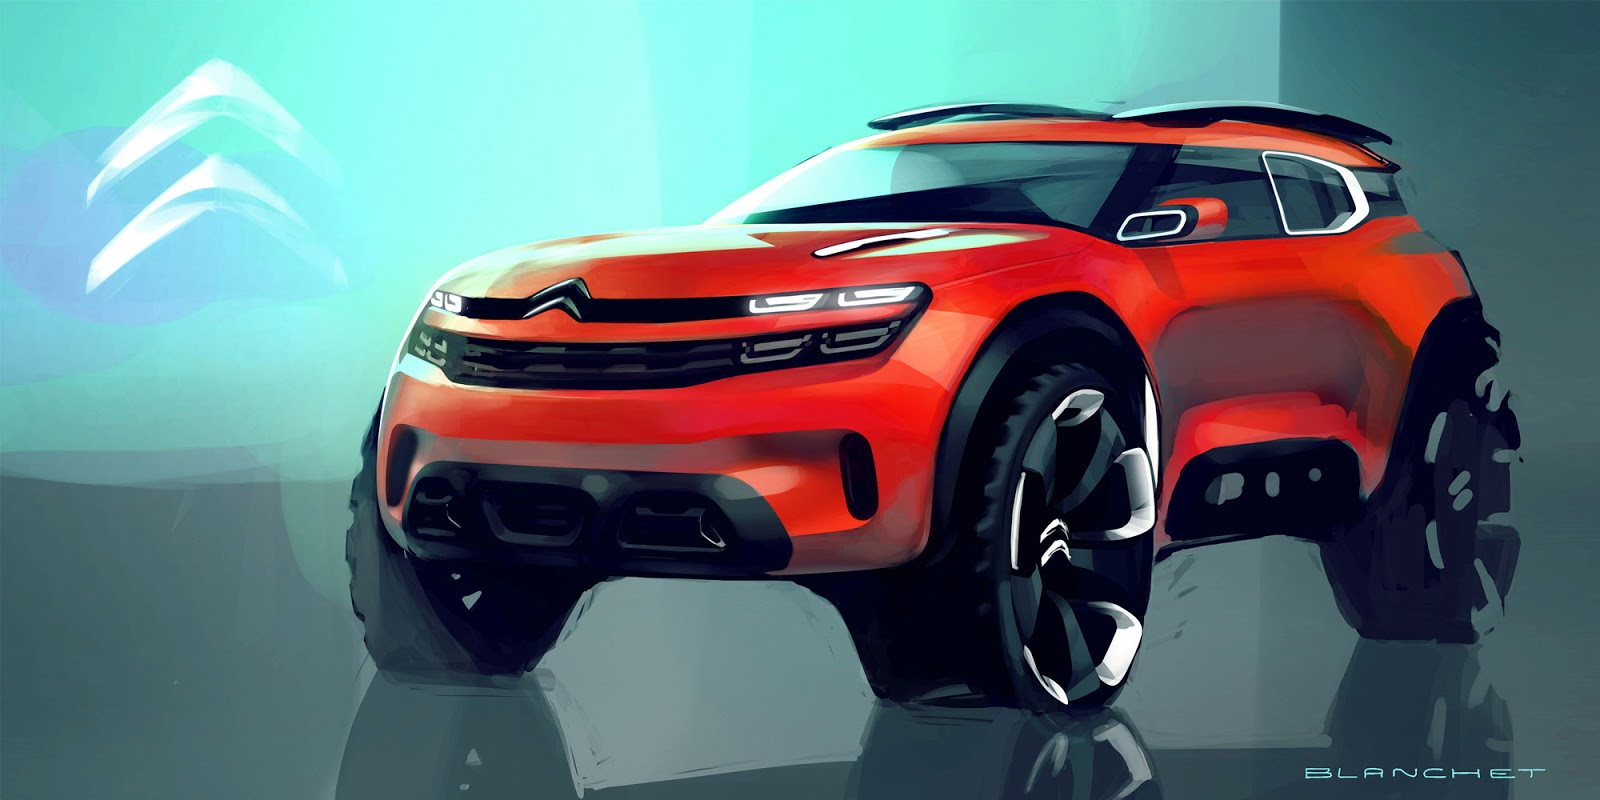 Citroen Aircross concept 2015 photoshop sketch by Gregory Blanchet